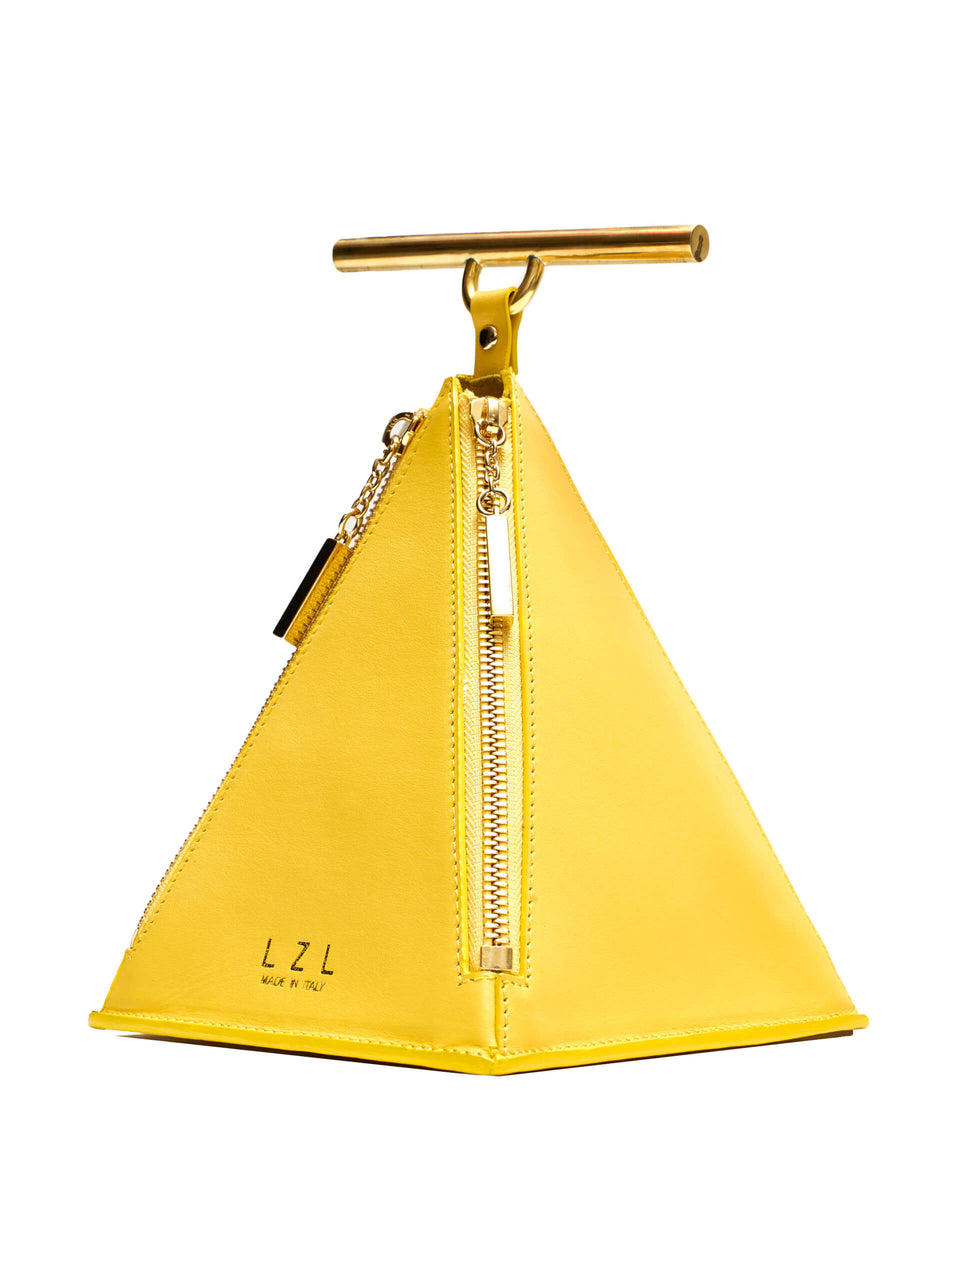 LZL Pyramid Bag 002 Yellow - Side